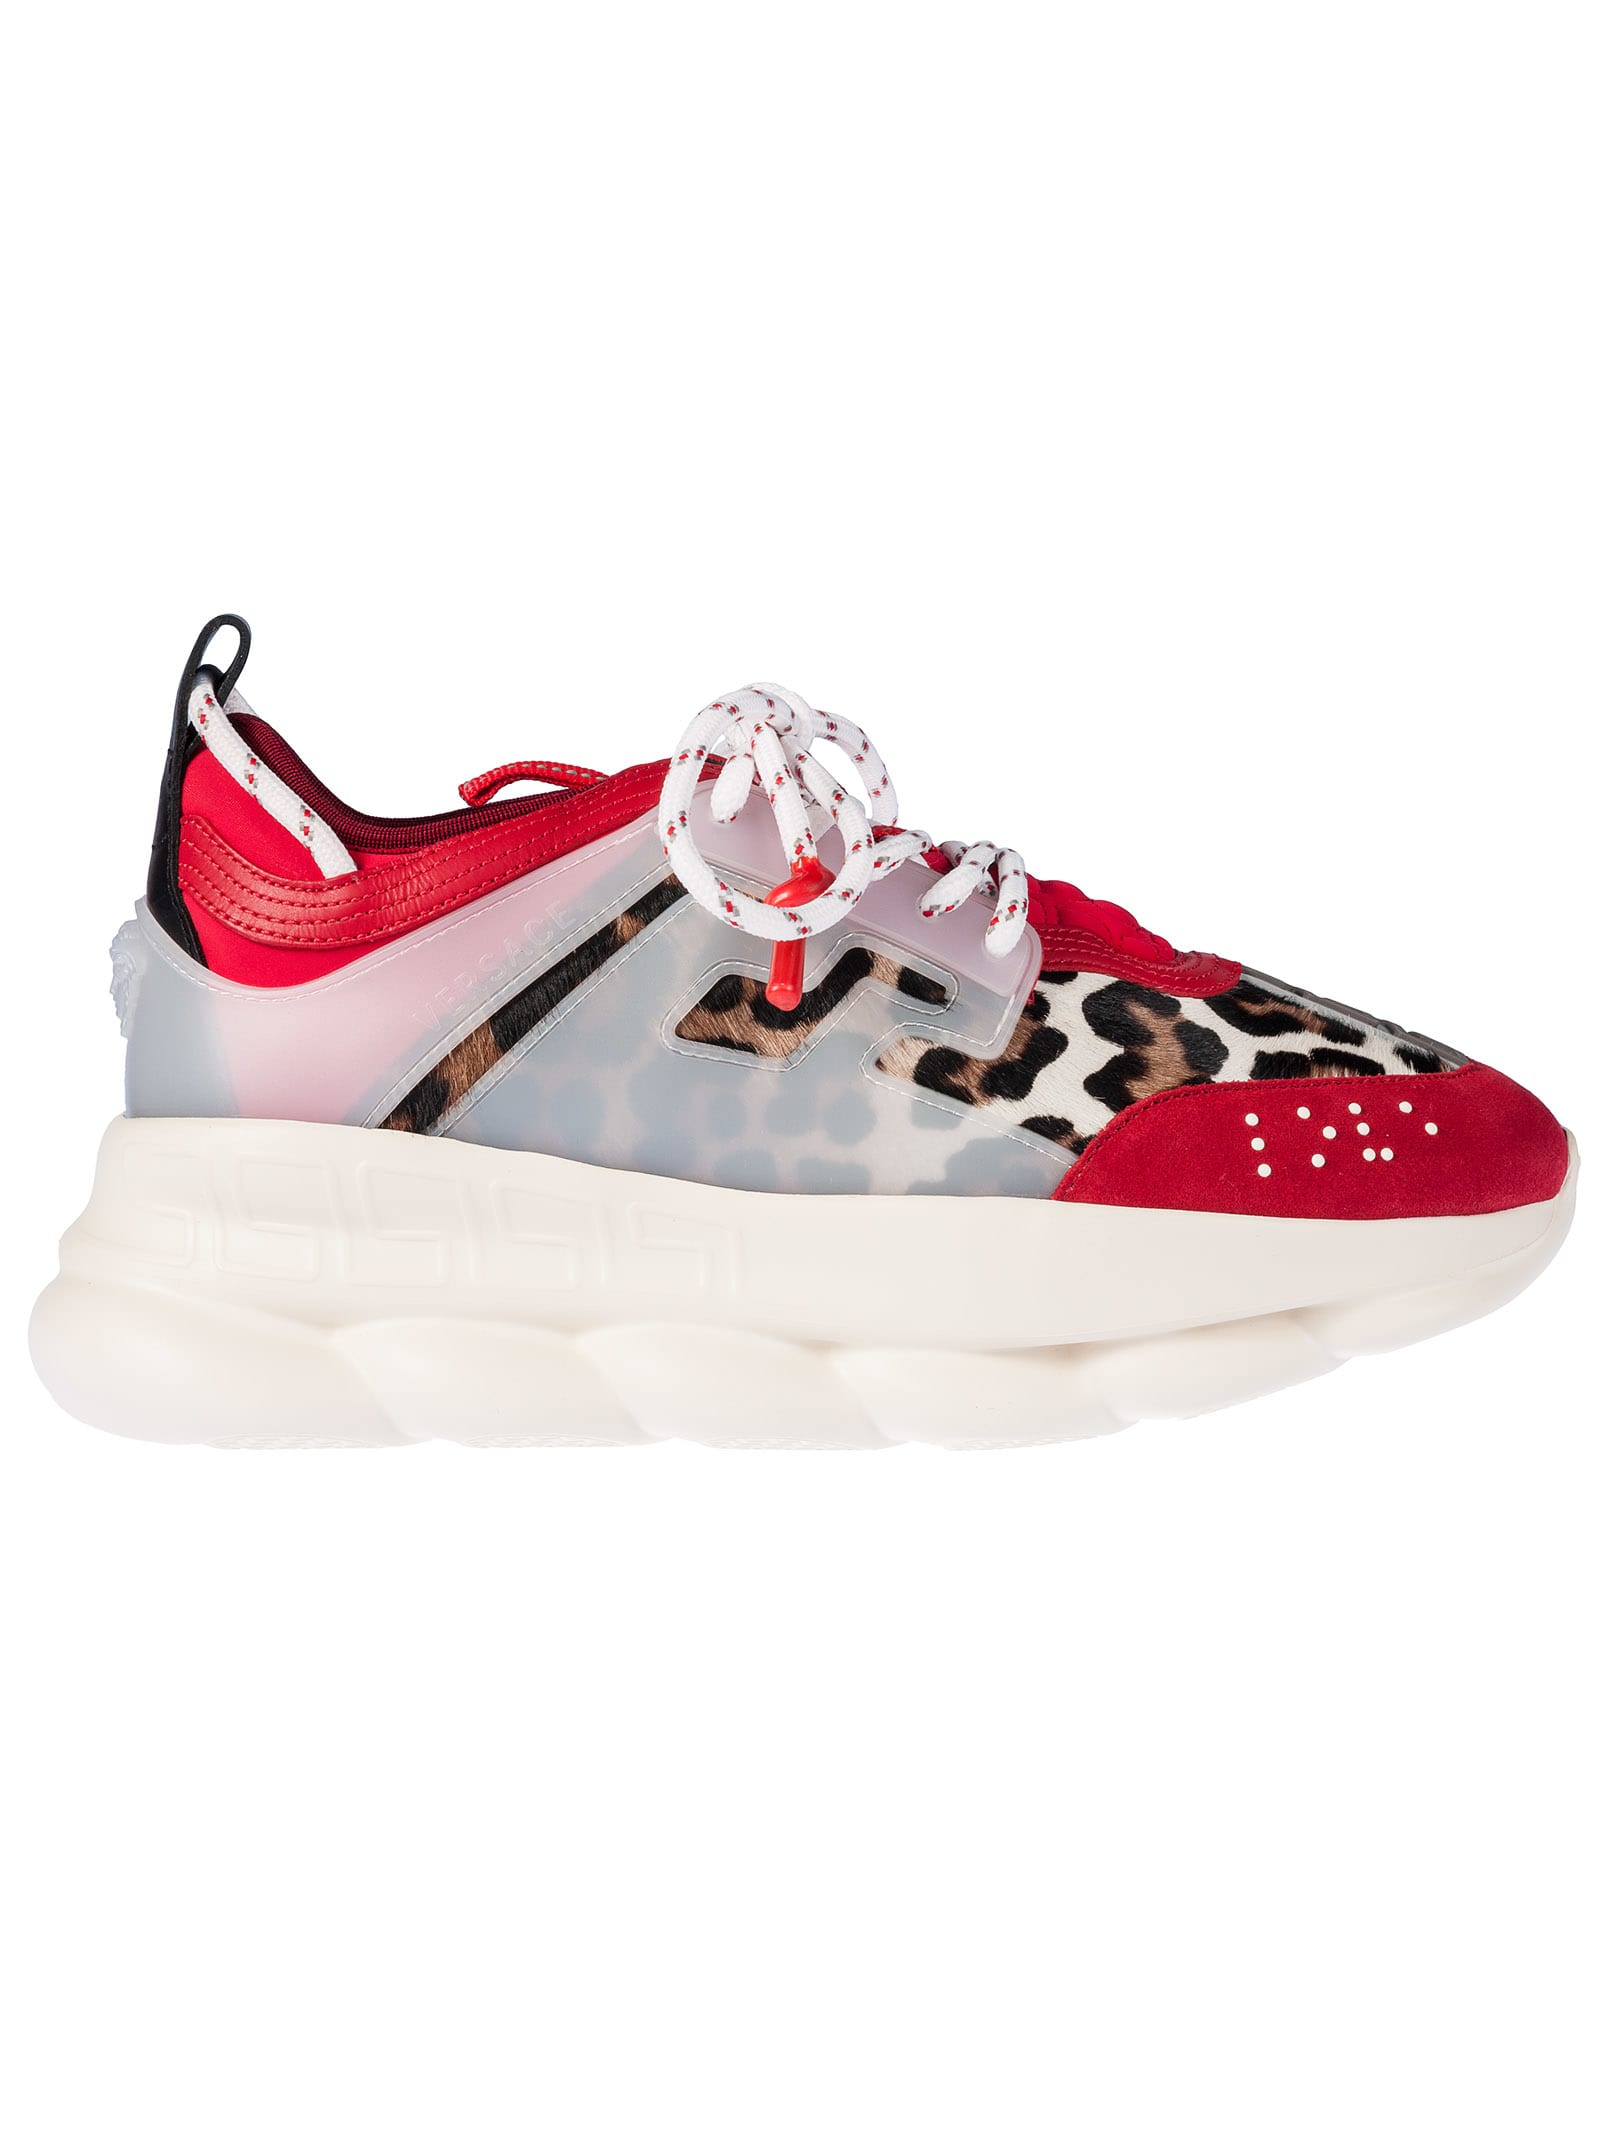 081d4f06c5f Versace Chain Reaction Sneakers